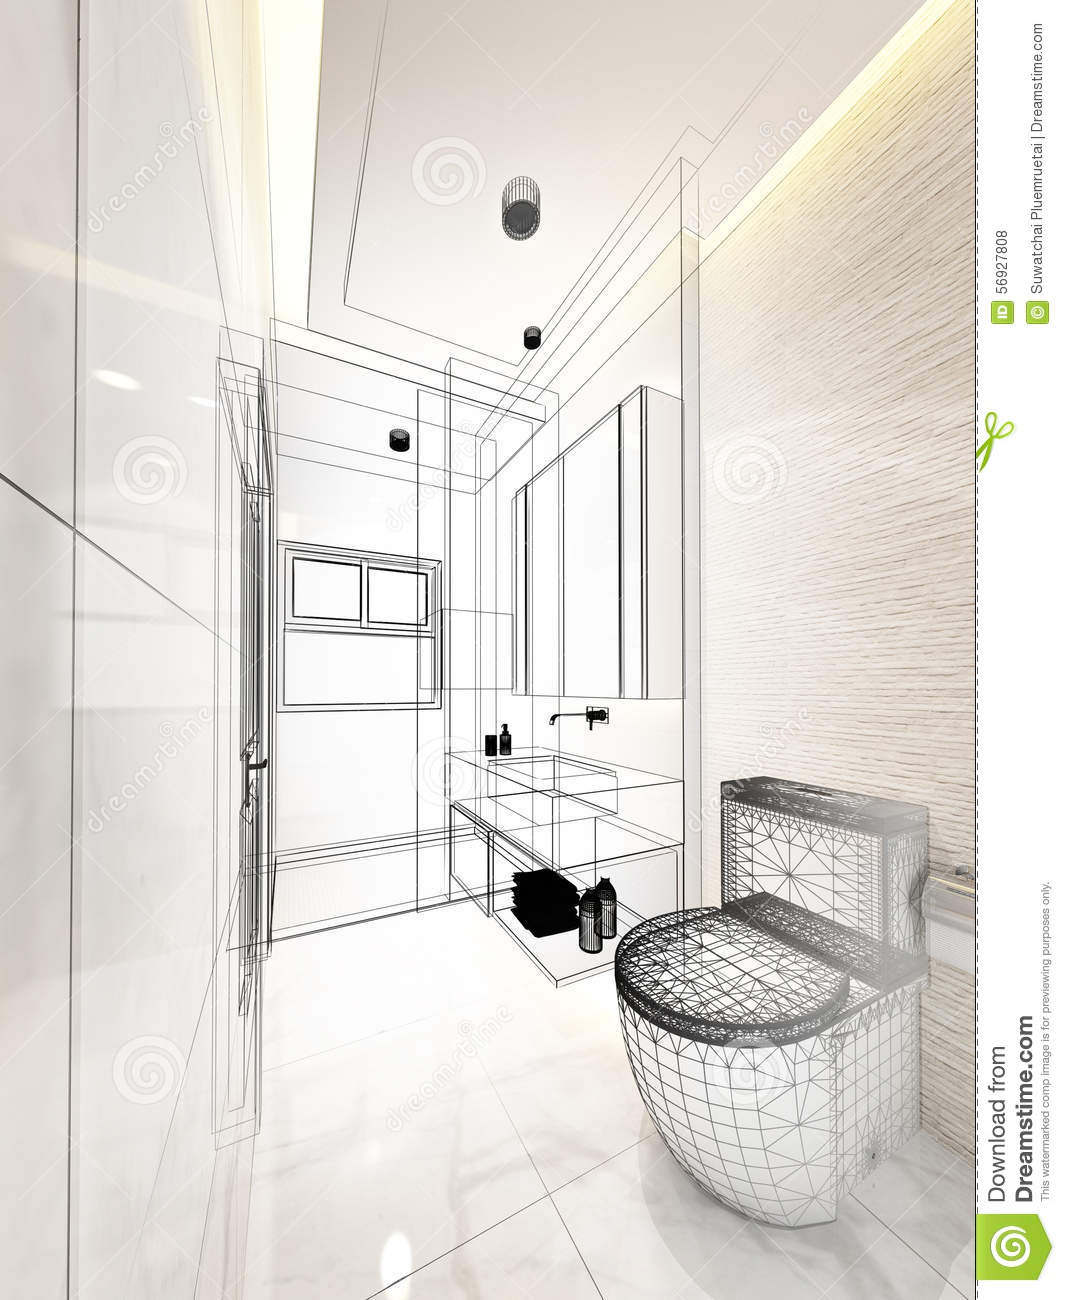 Abstract Sketch Design Of Interior Bathroom Stock Illustration Image 56927808